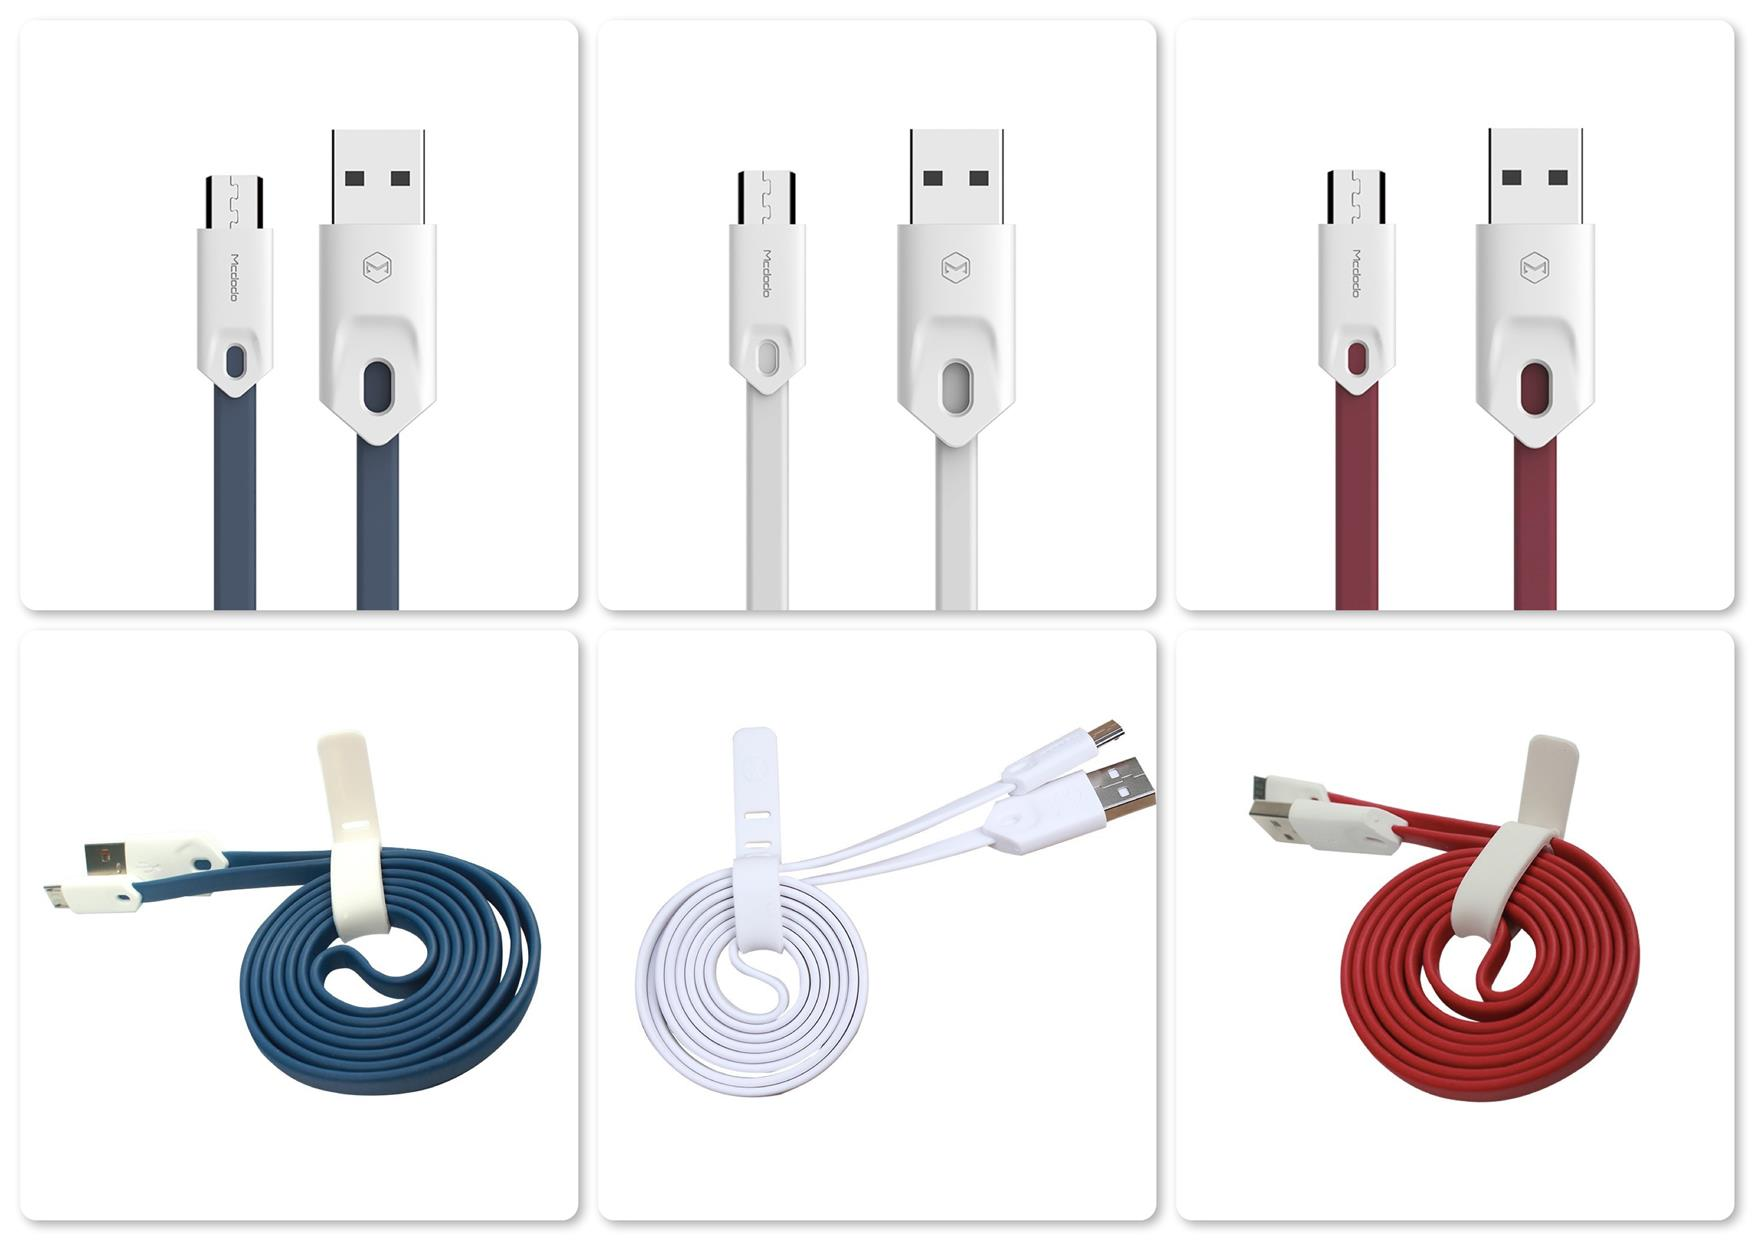 Original Mcdodo 1m MicroUSB Data Cable